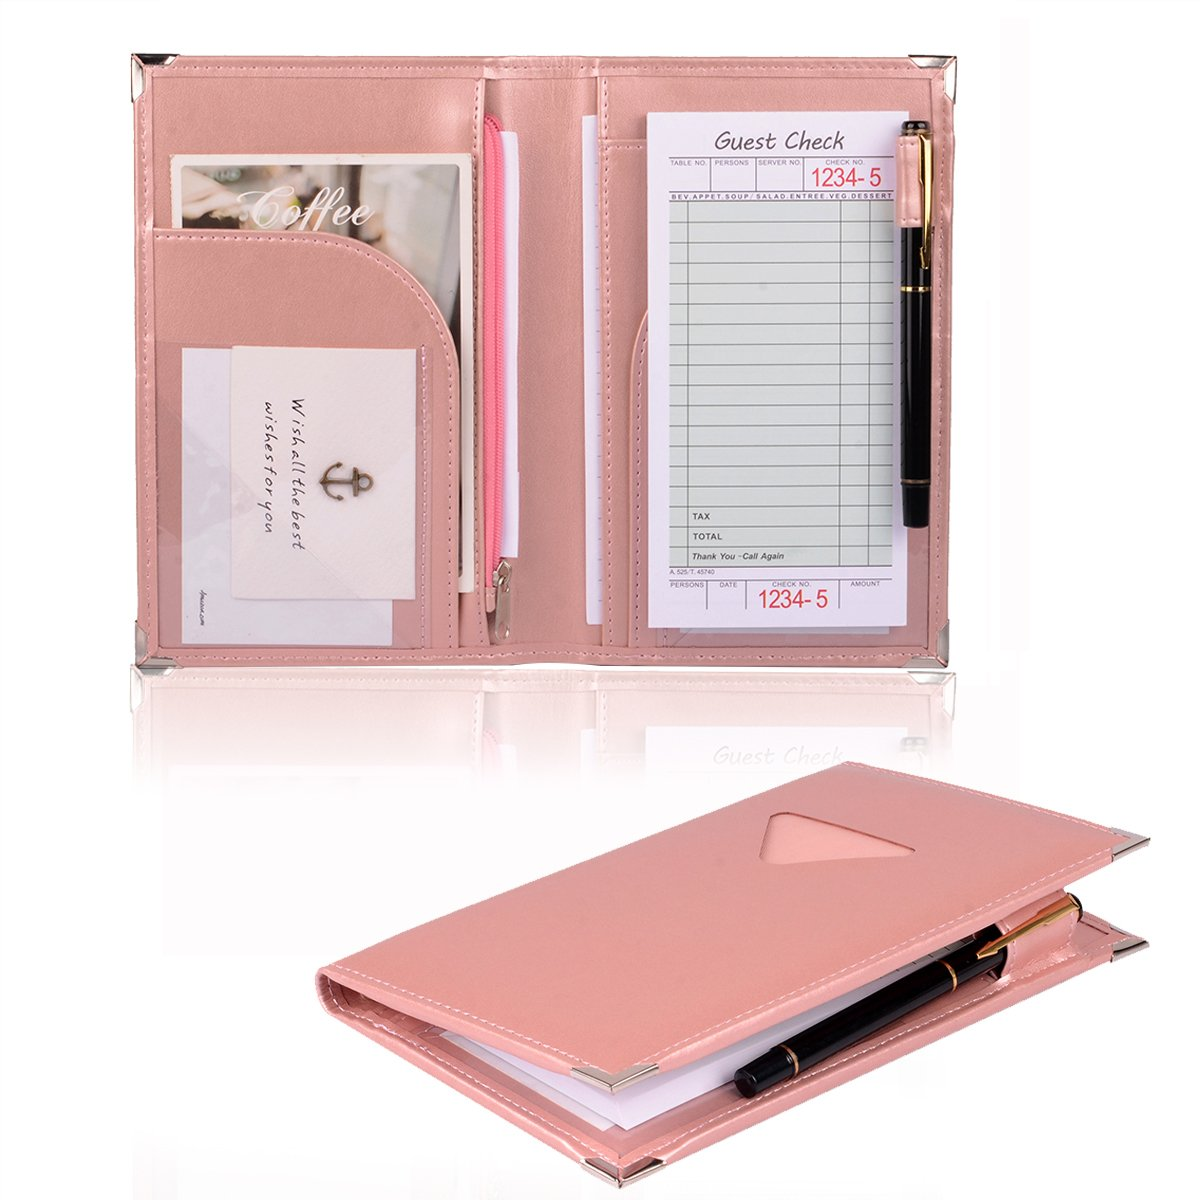 Server Book for Waitress or Waiter, Pink Cute Server Wallet with Zipper Pocket for Restaurant Receipt or Money Check Holder, Waiter Book Organizer Fits in Server Apron + Includ Server Note Pad (Pink)